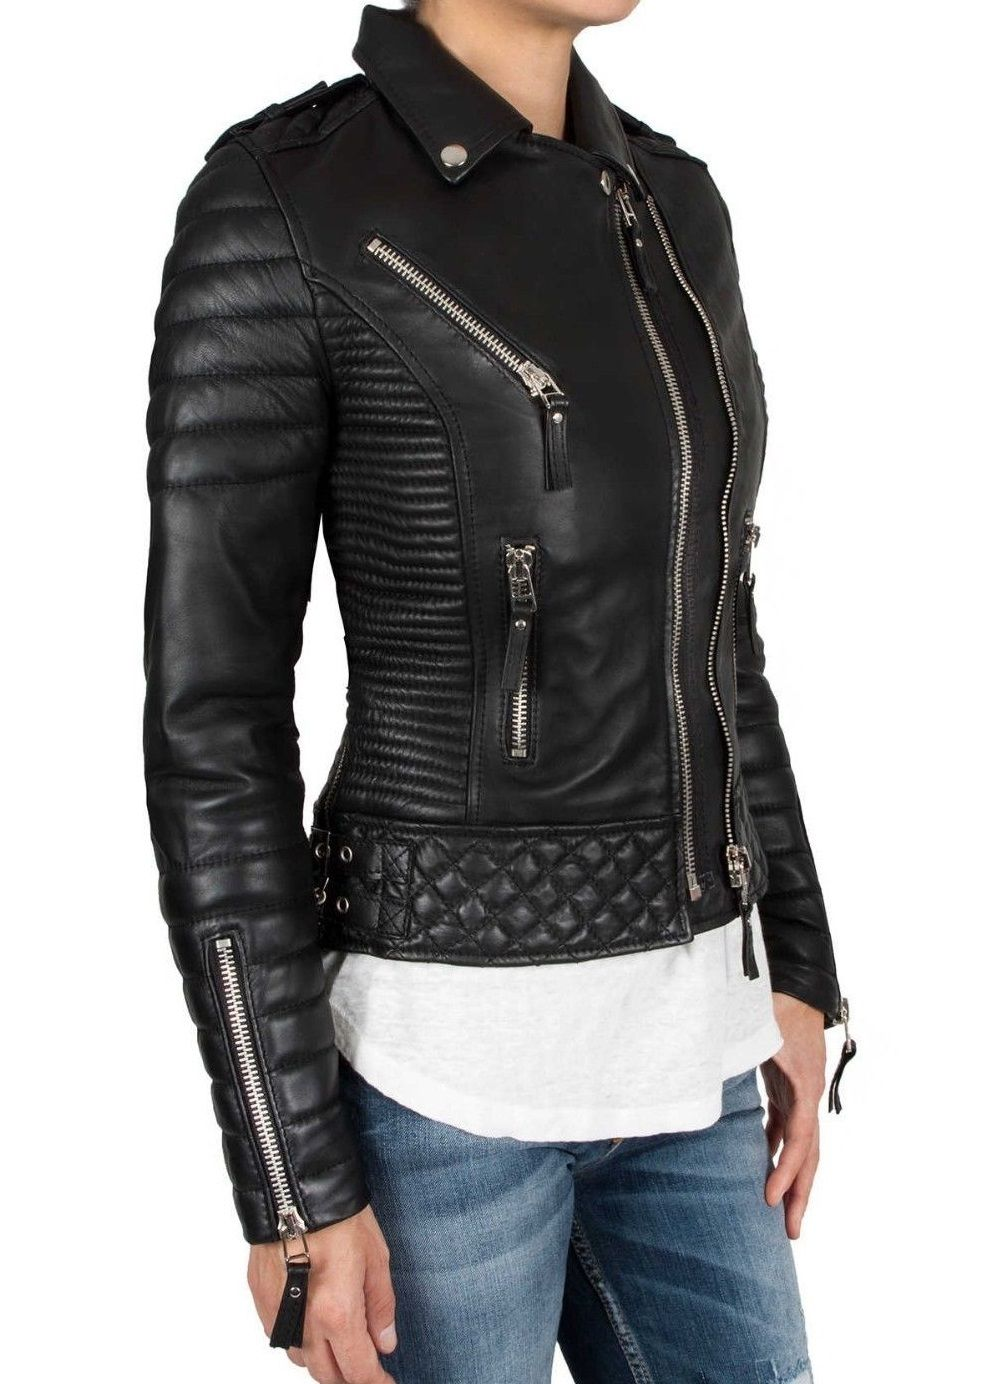 4451036d4b83 New Handmade Leather Skin Women Black Padded Diamond Quilted Brando Leather  Jack - Coats   Jackets